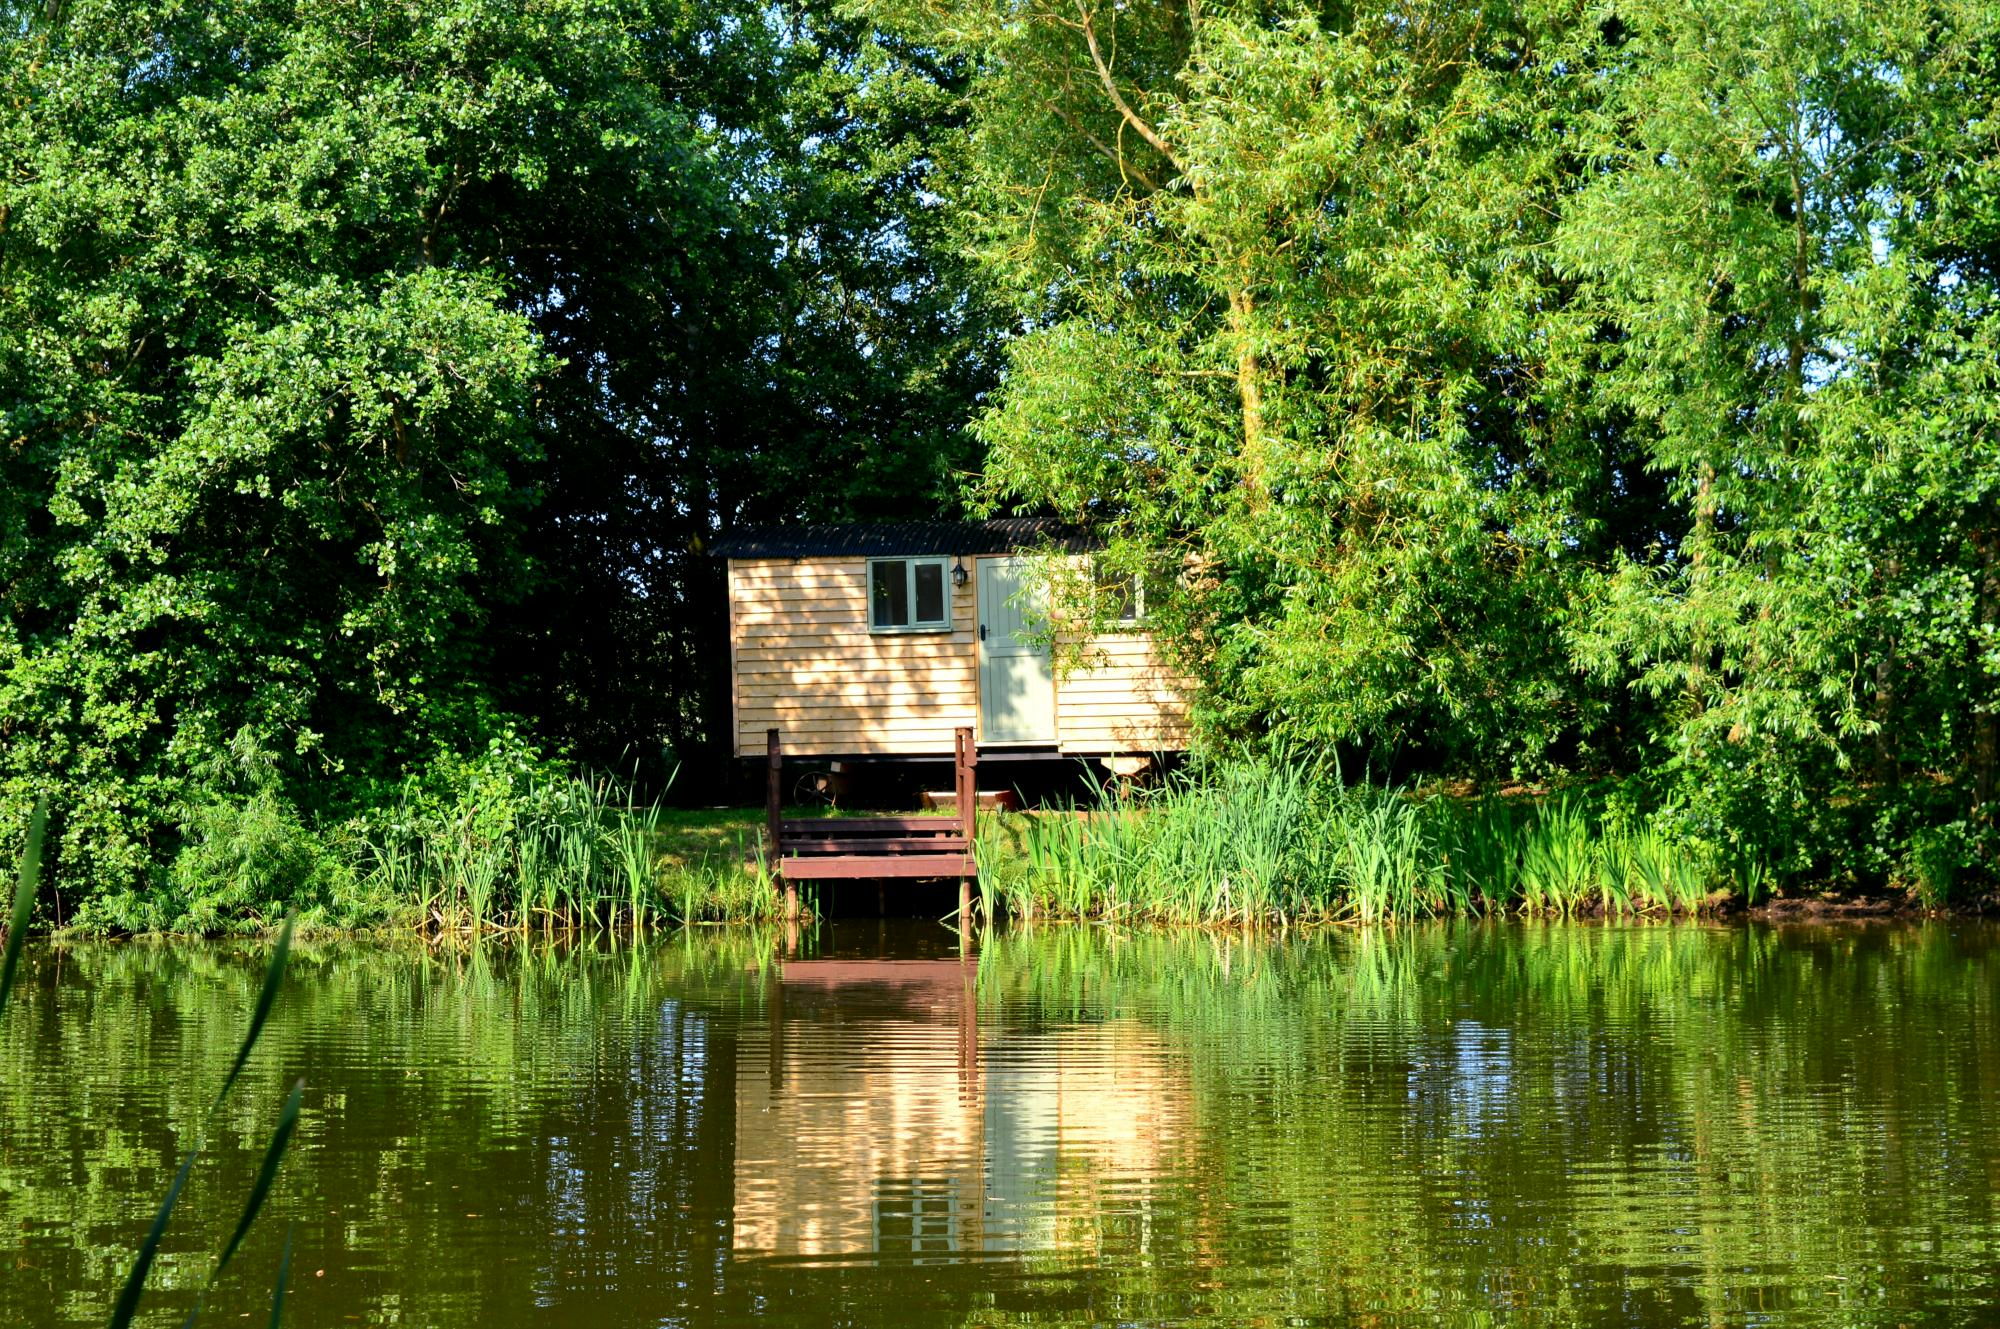 Campsites in Leicestershire – Glampingly